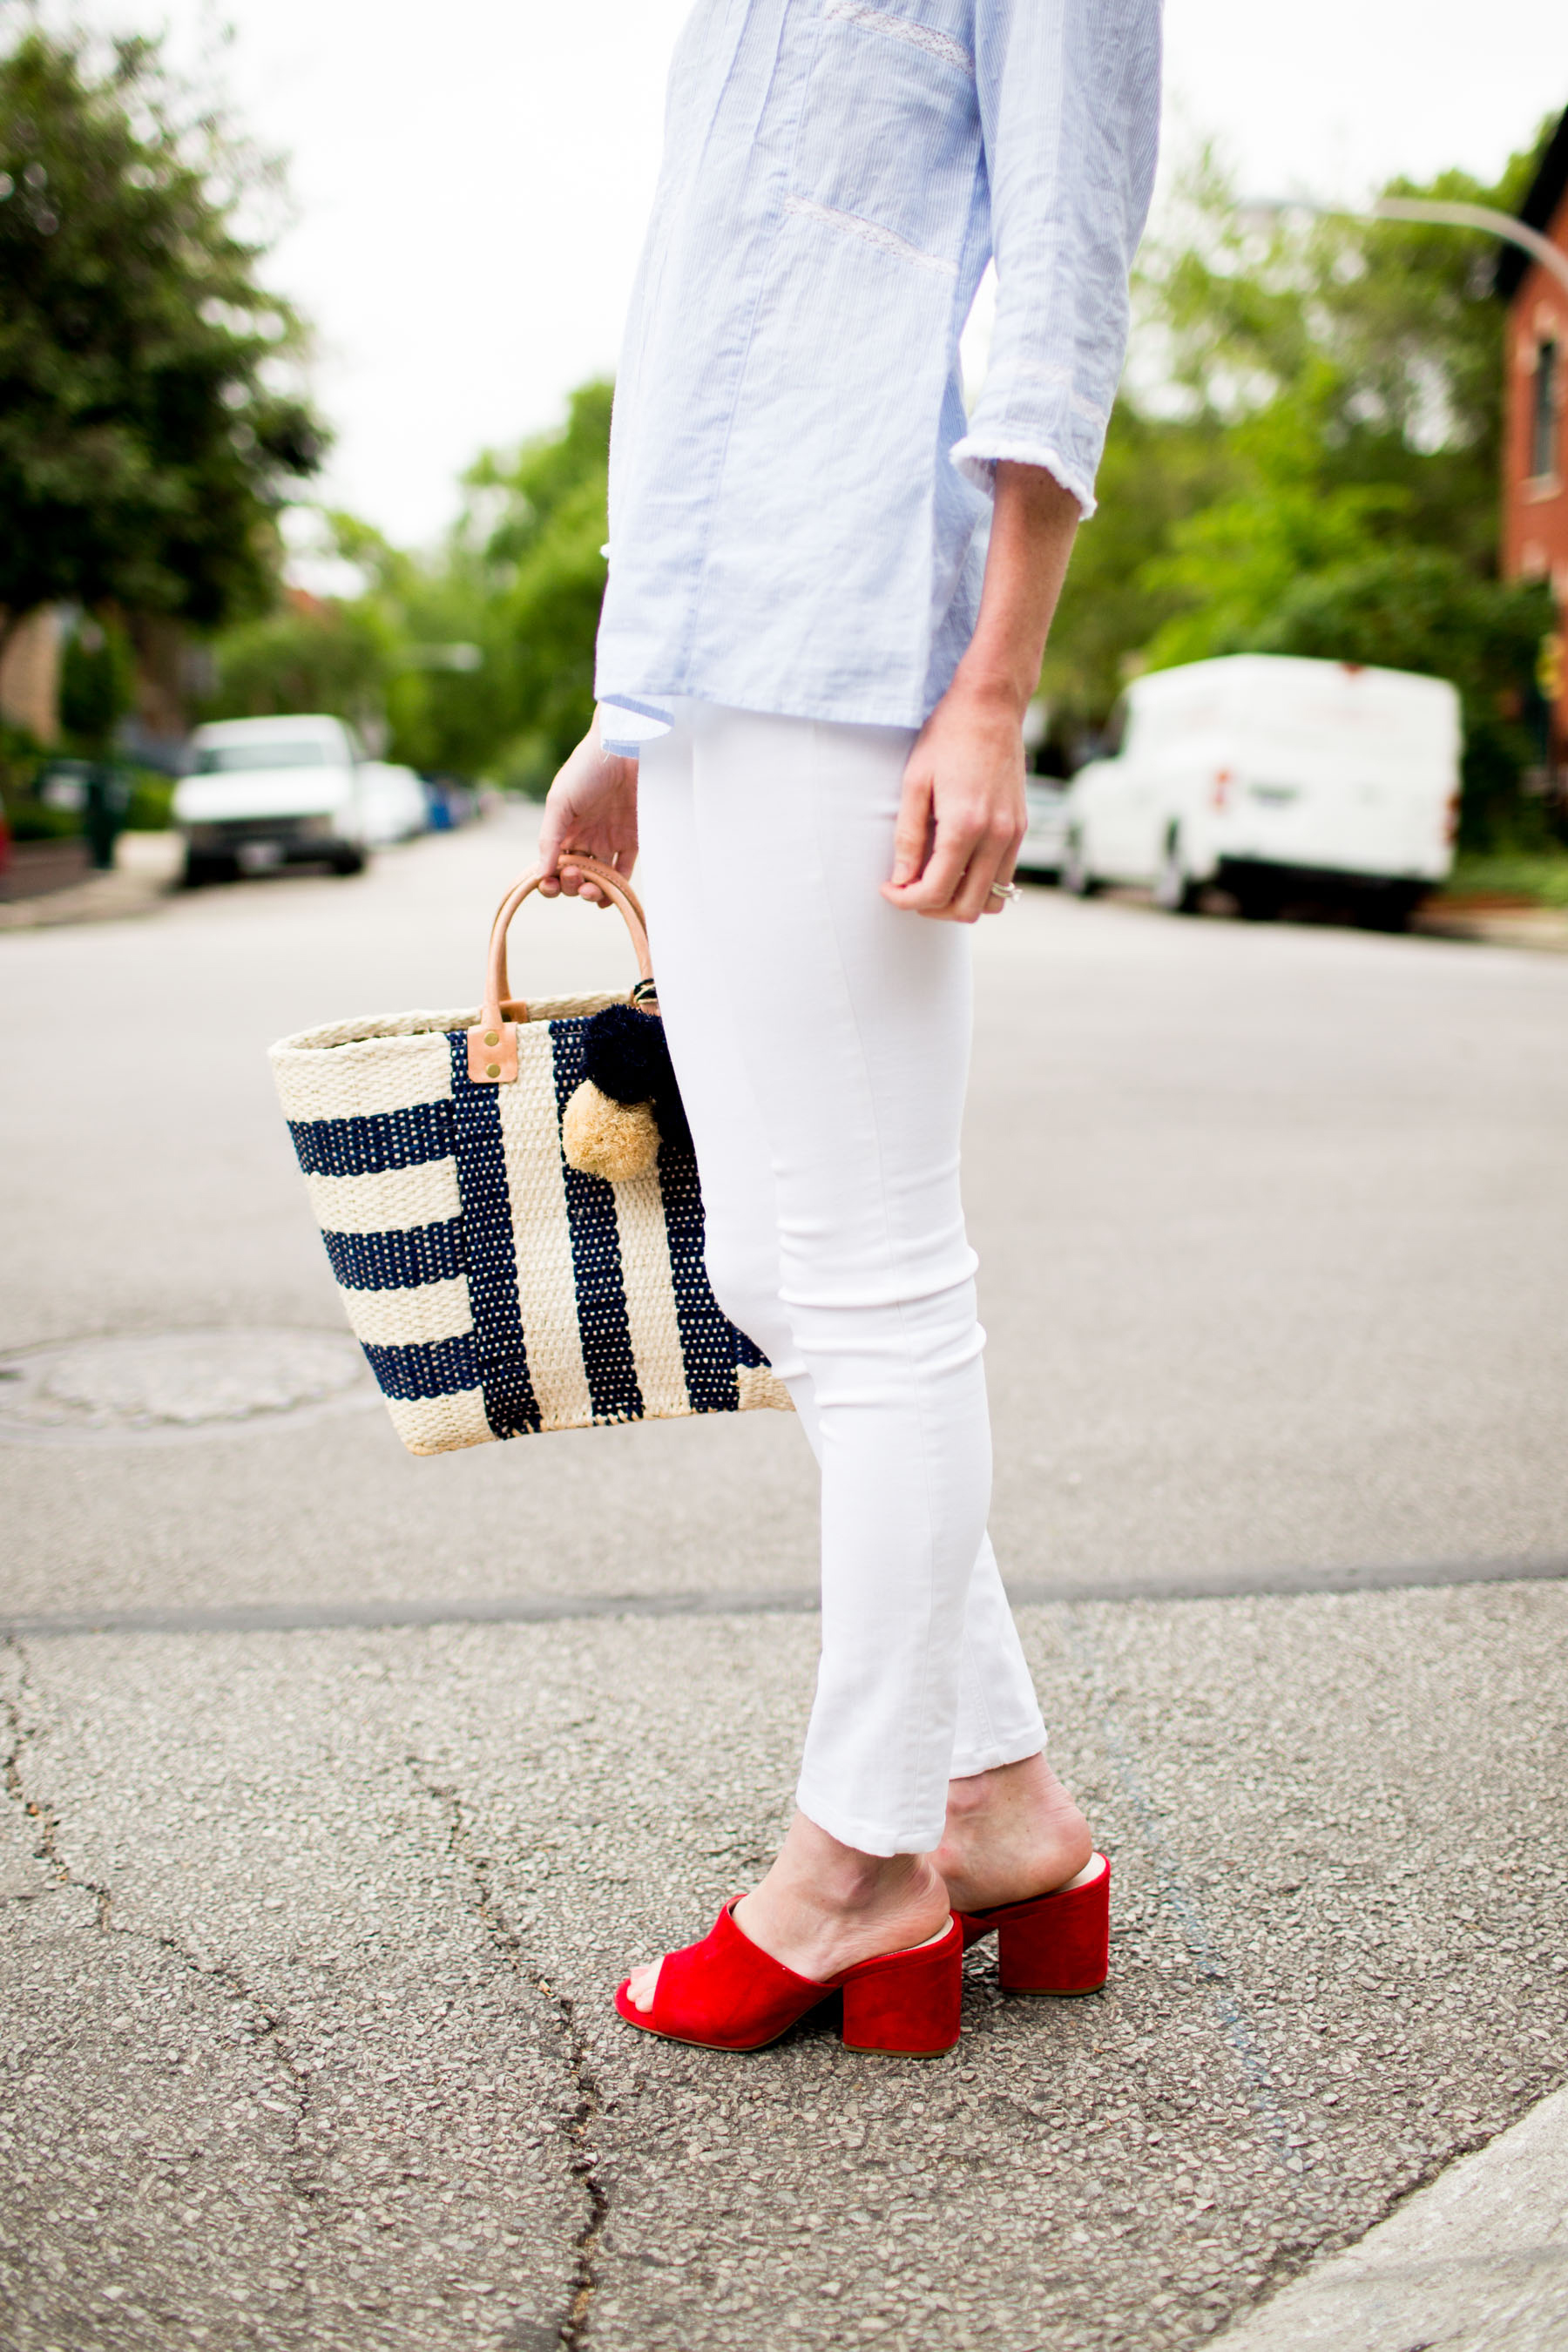 Caslon Pinktuck Pleat Top / Mar Y Sol Tote / White Skinny Jeans / Red Slides